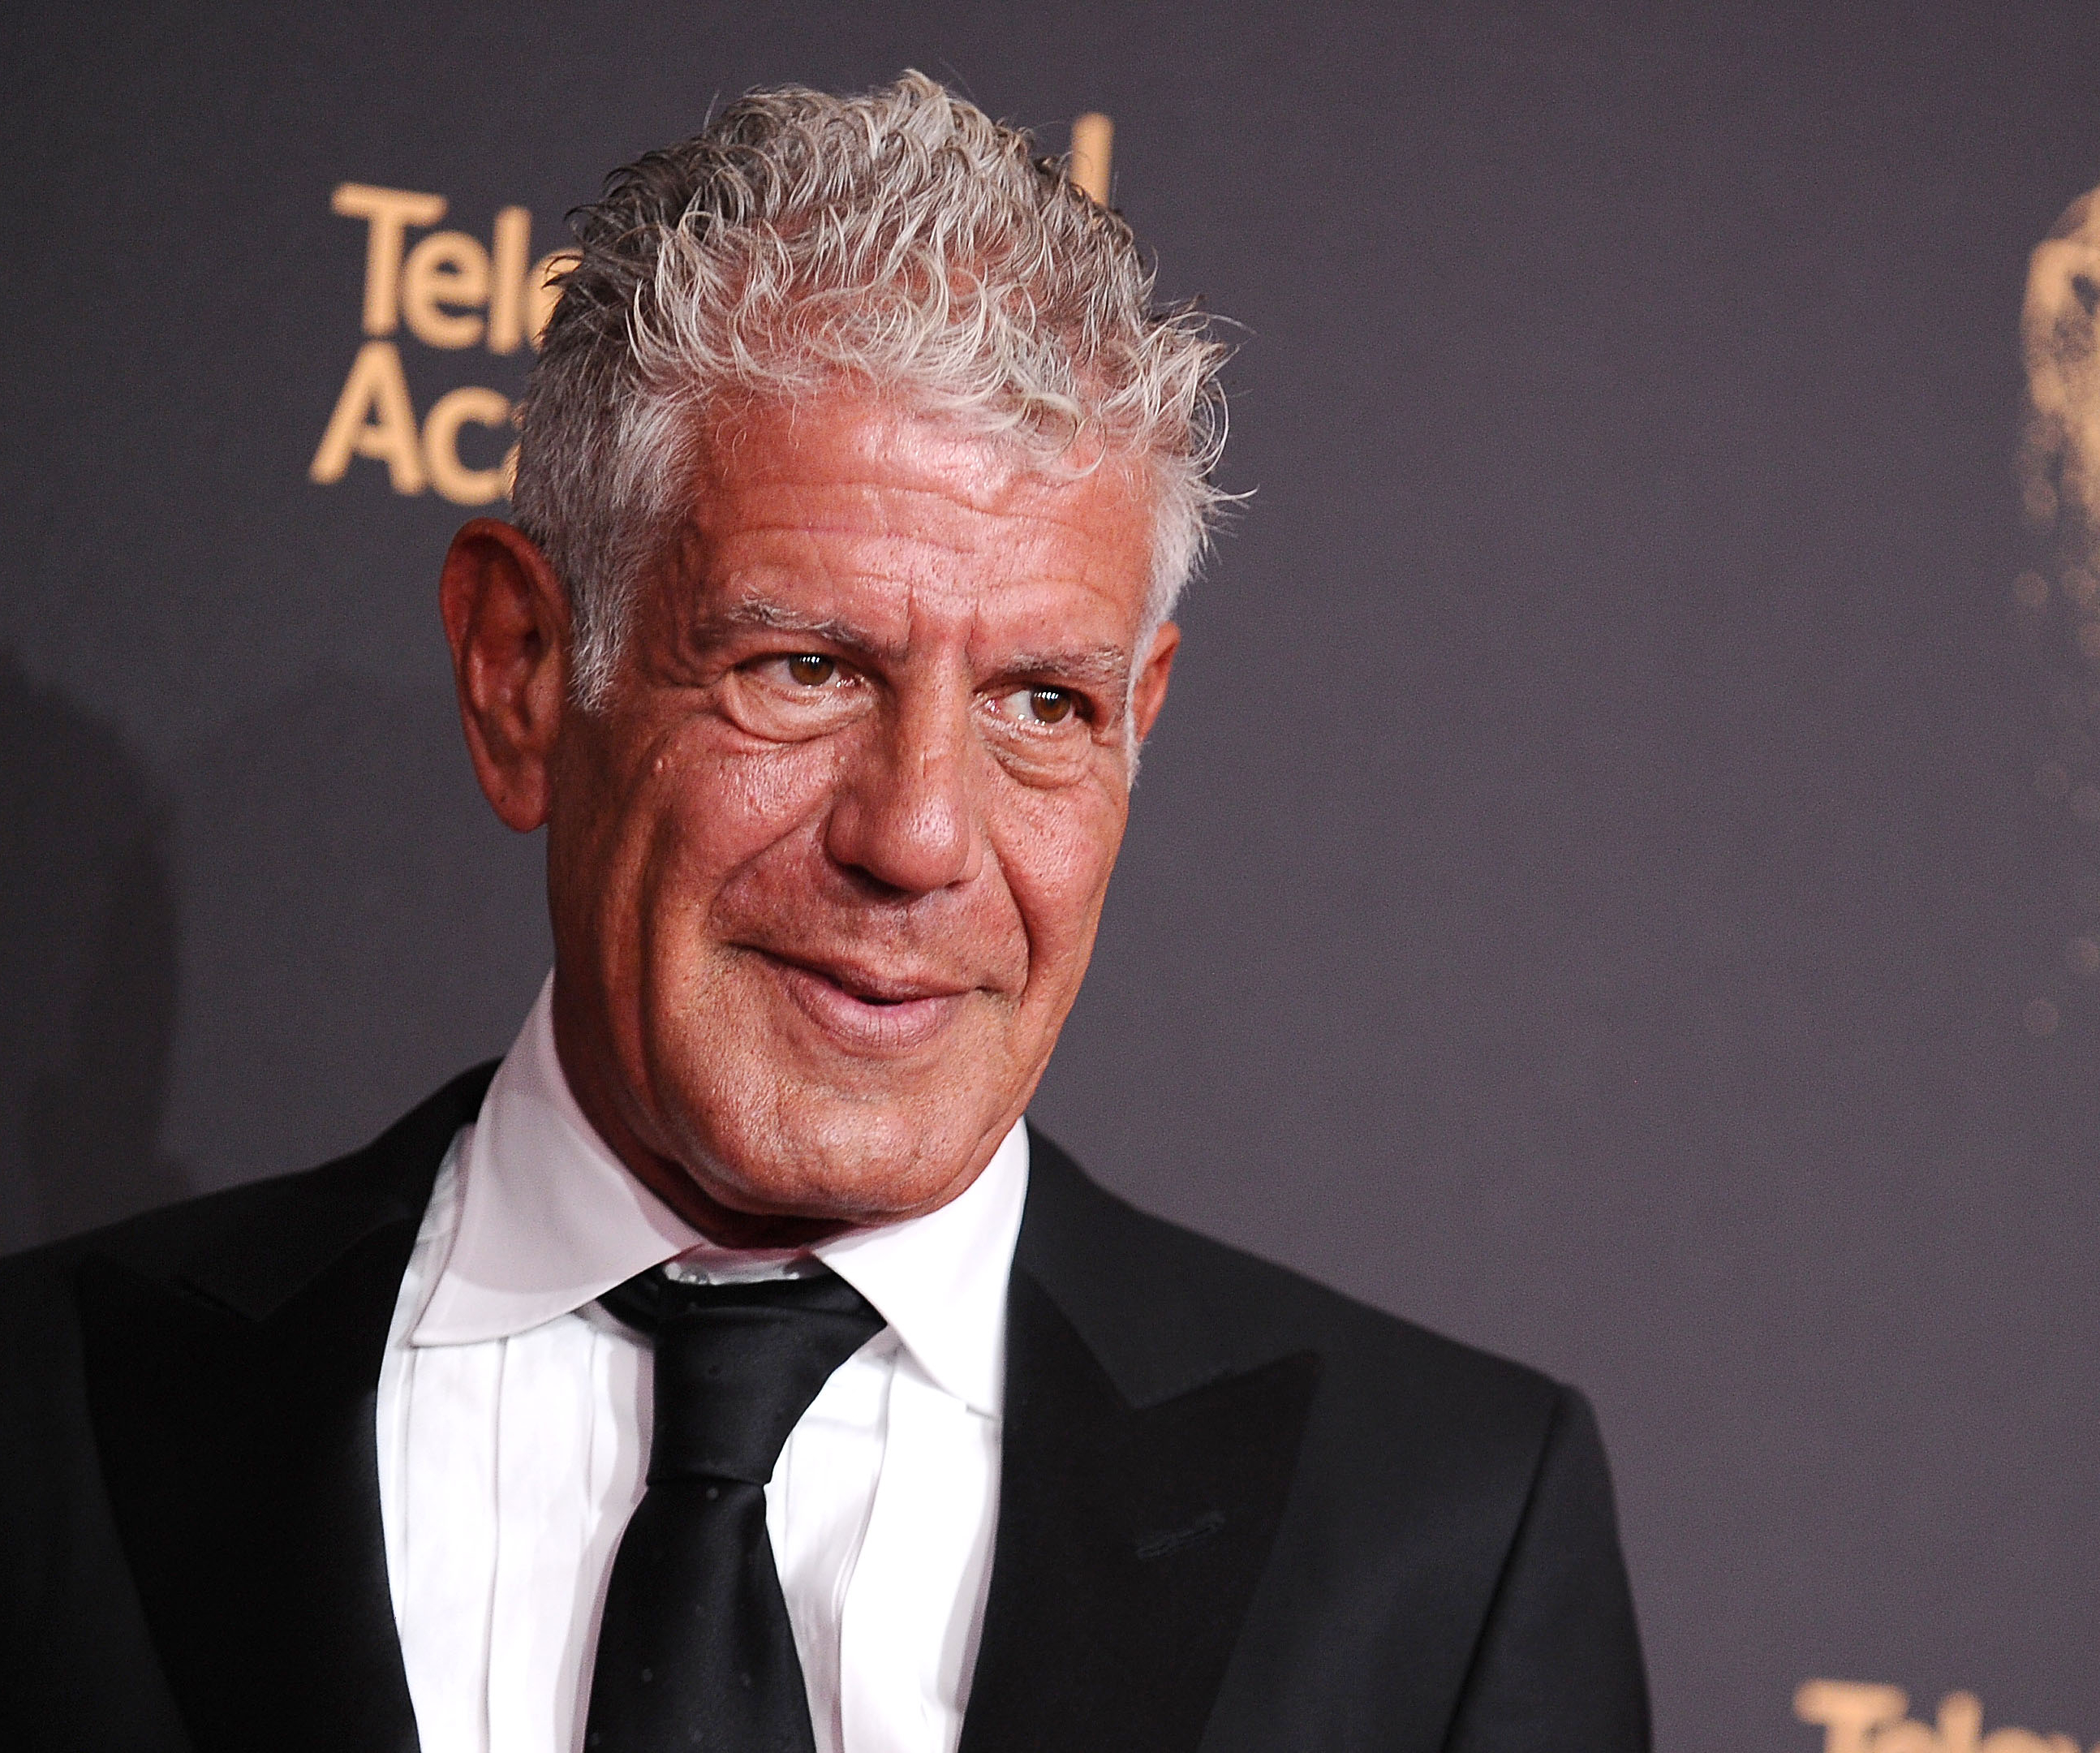 The moment Anthony Bourdain's life started to unravel